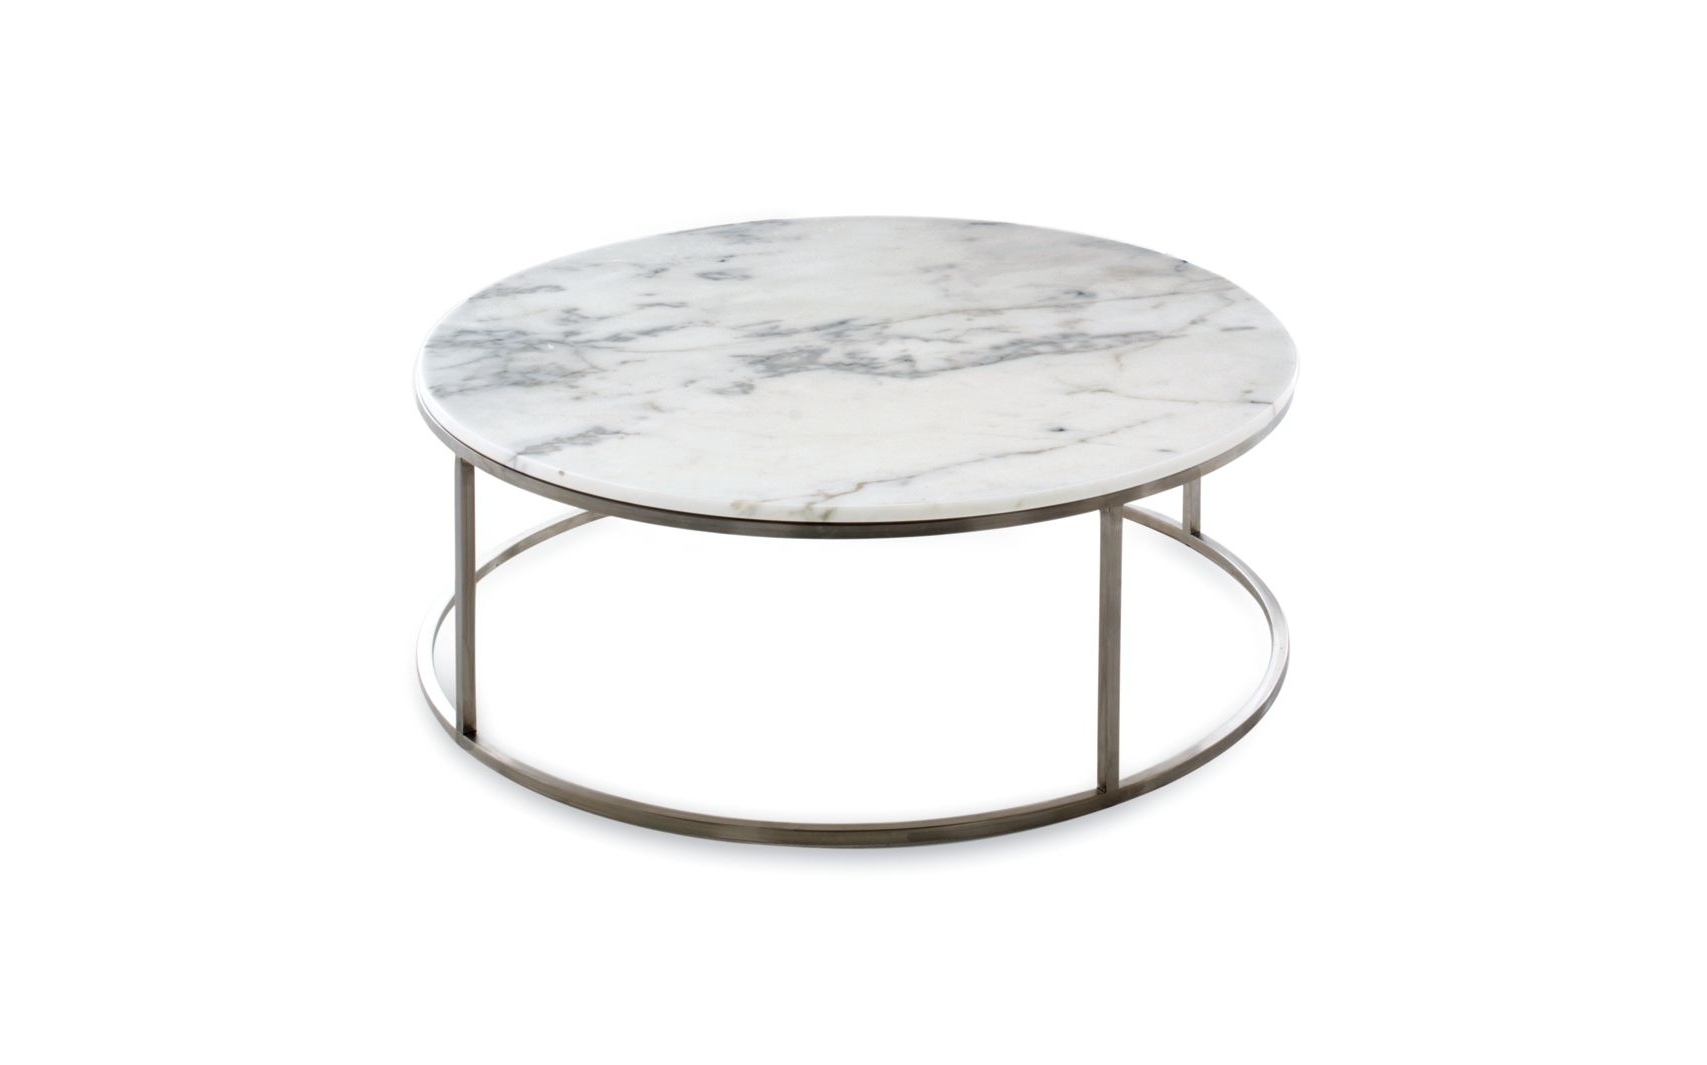 Hommeschooled Intended For Current Smart Round Marble Top Coffee Tables (Gallery 11 of 20)